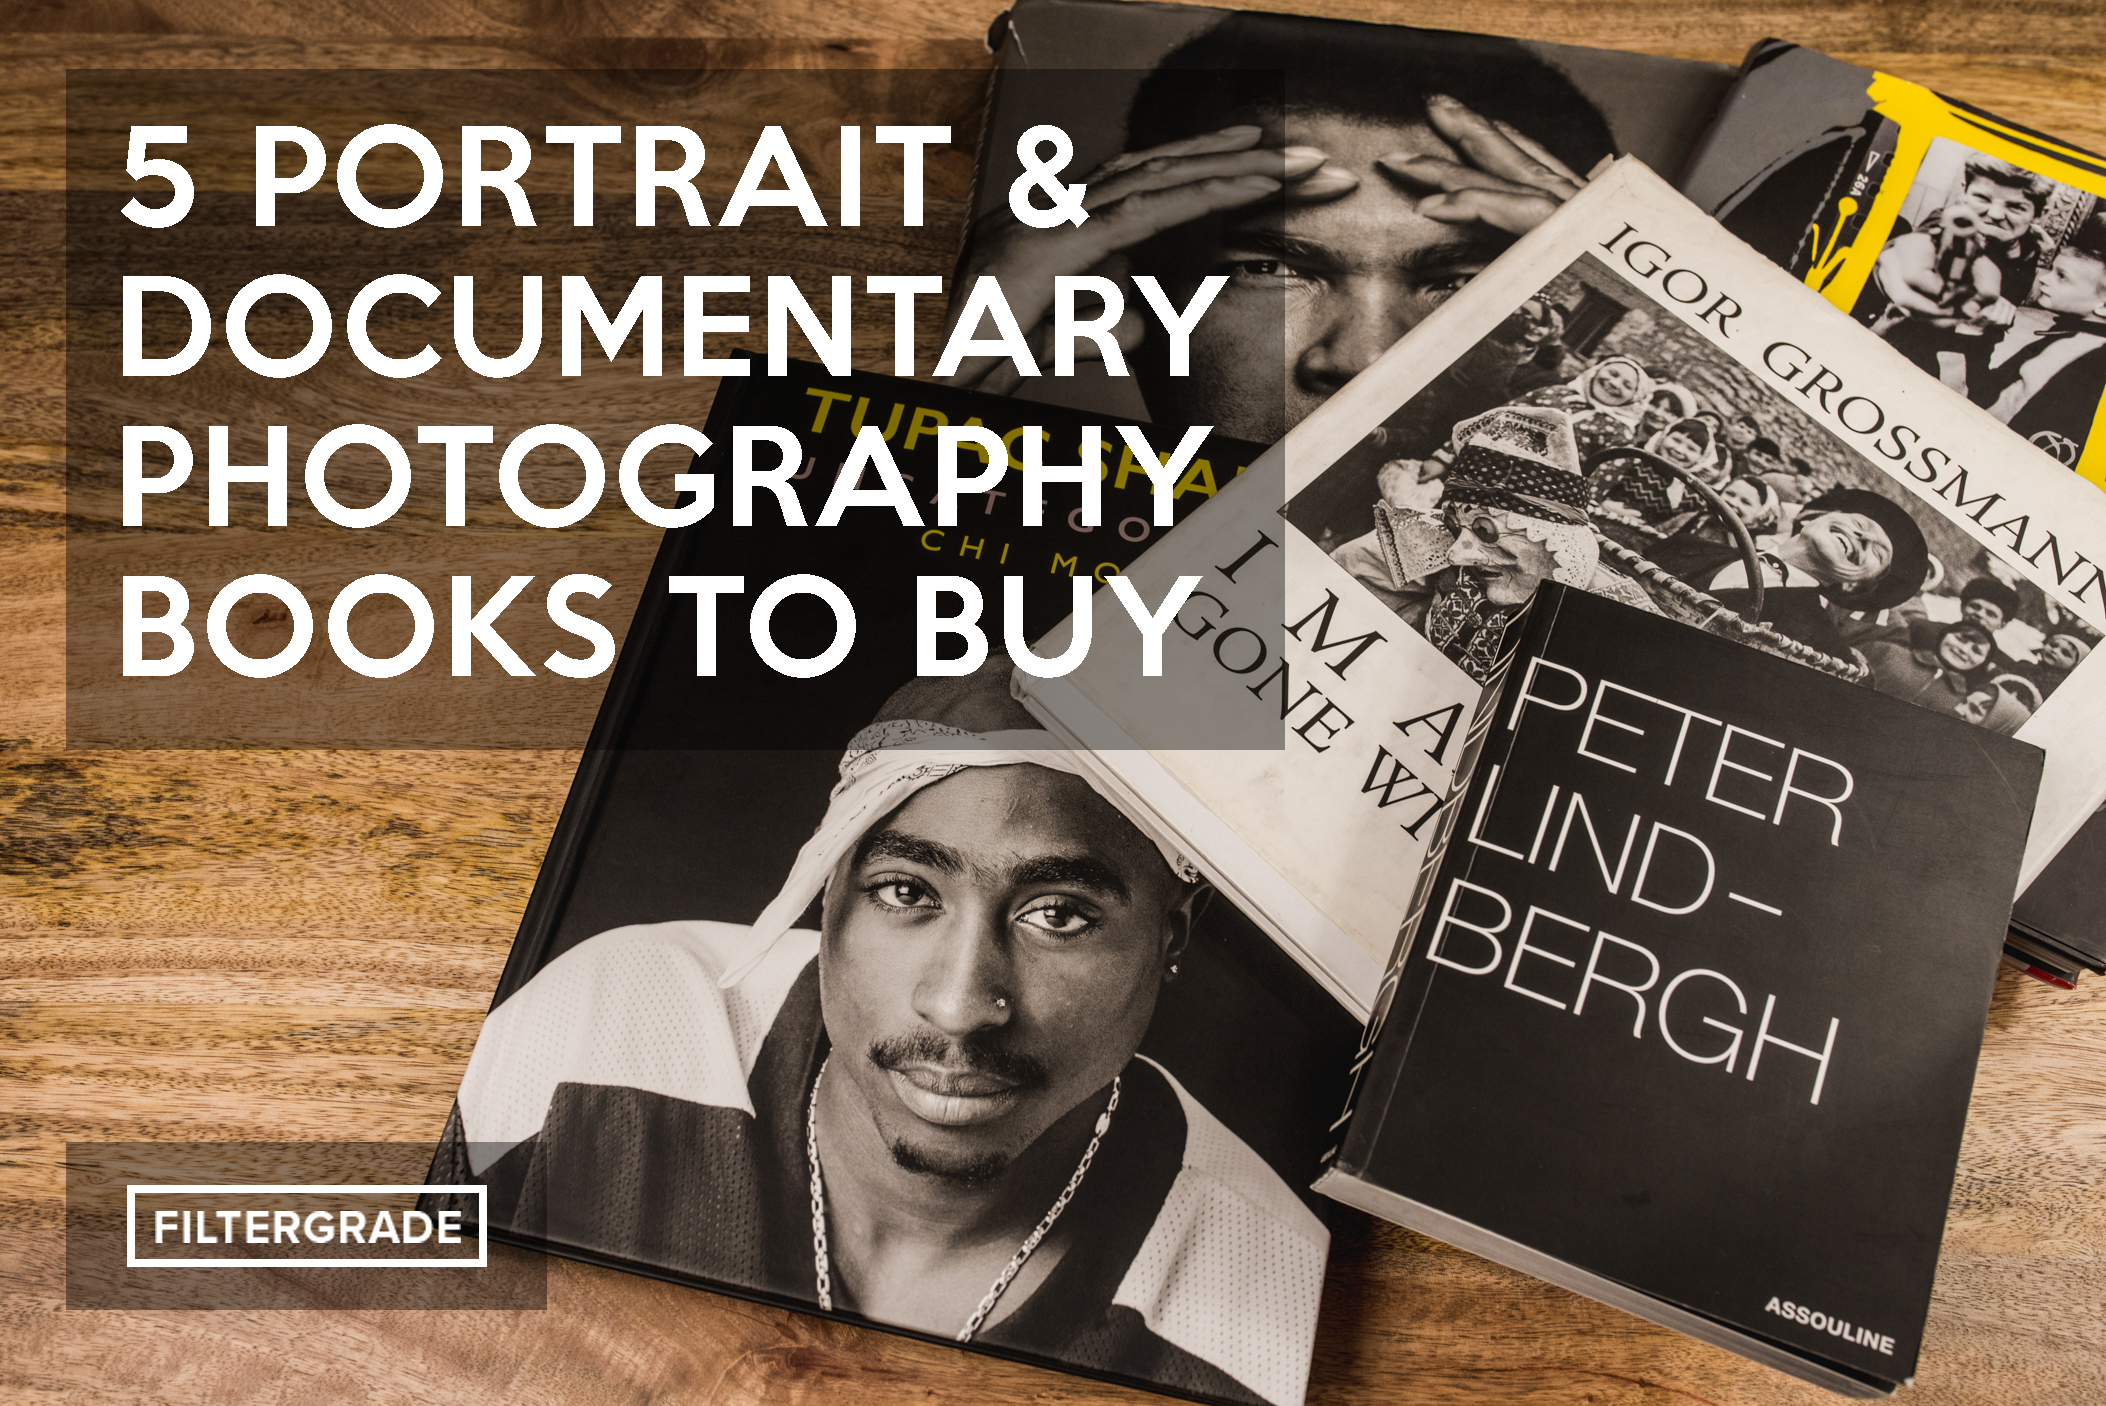 Featured- 5 Portrait & Documentary Photo Books - FilterGrade